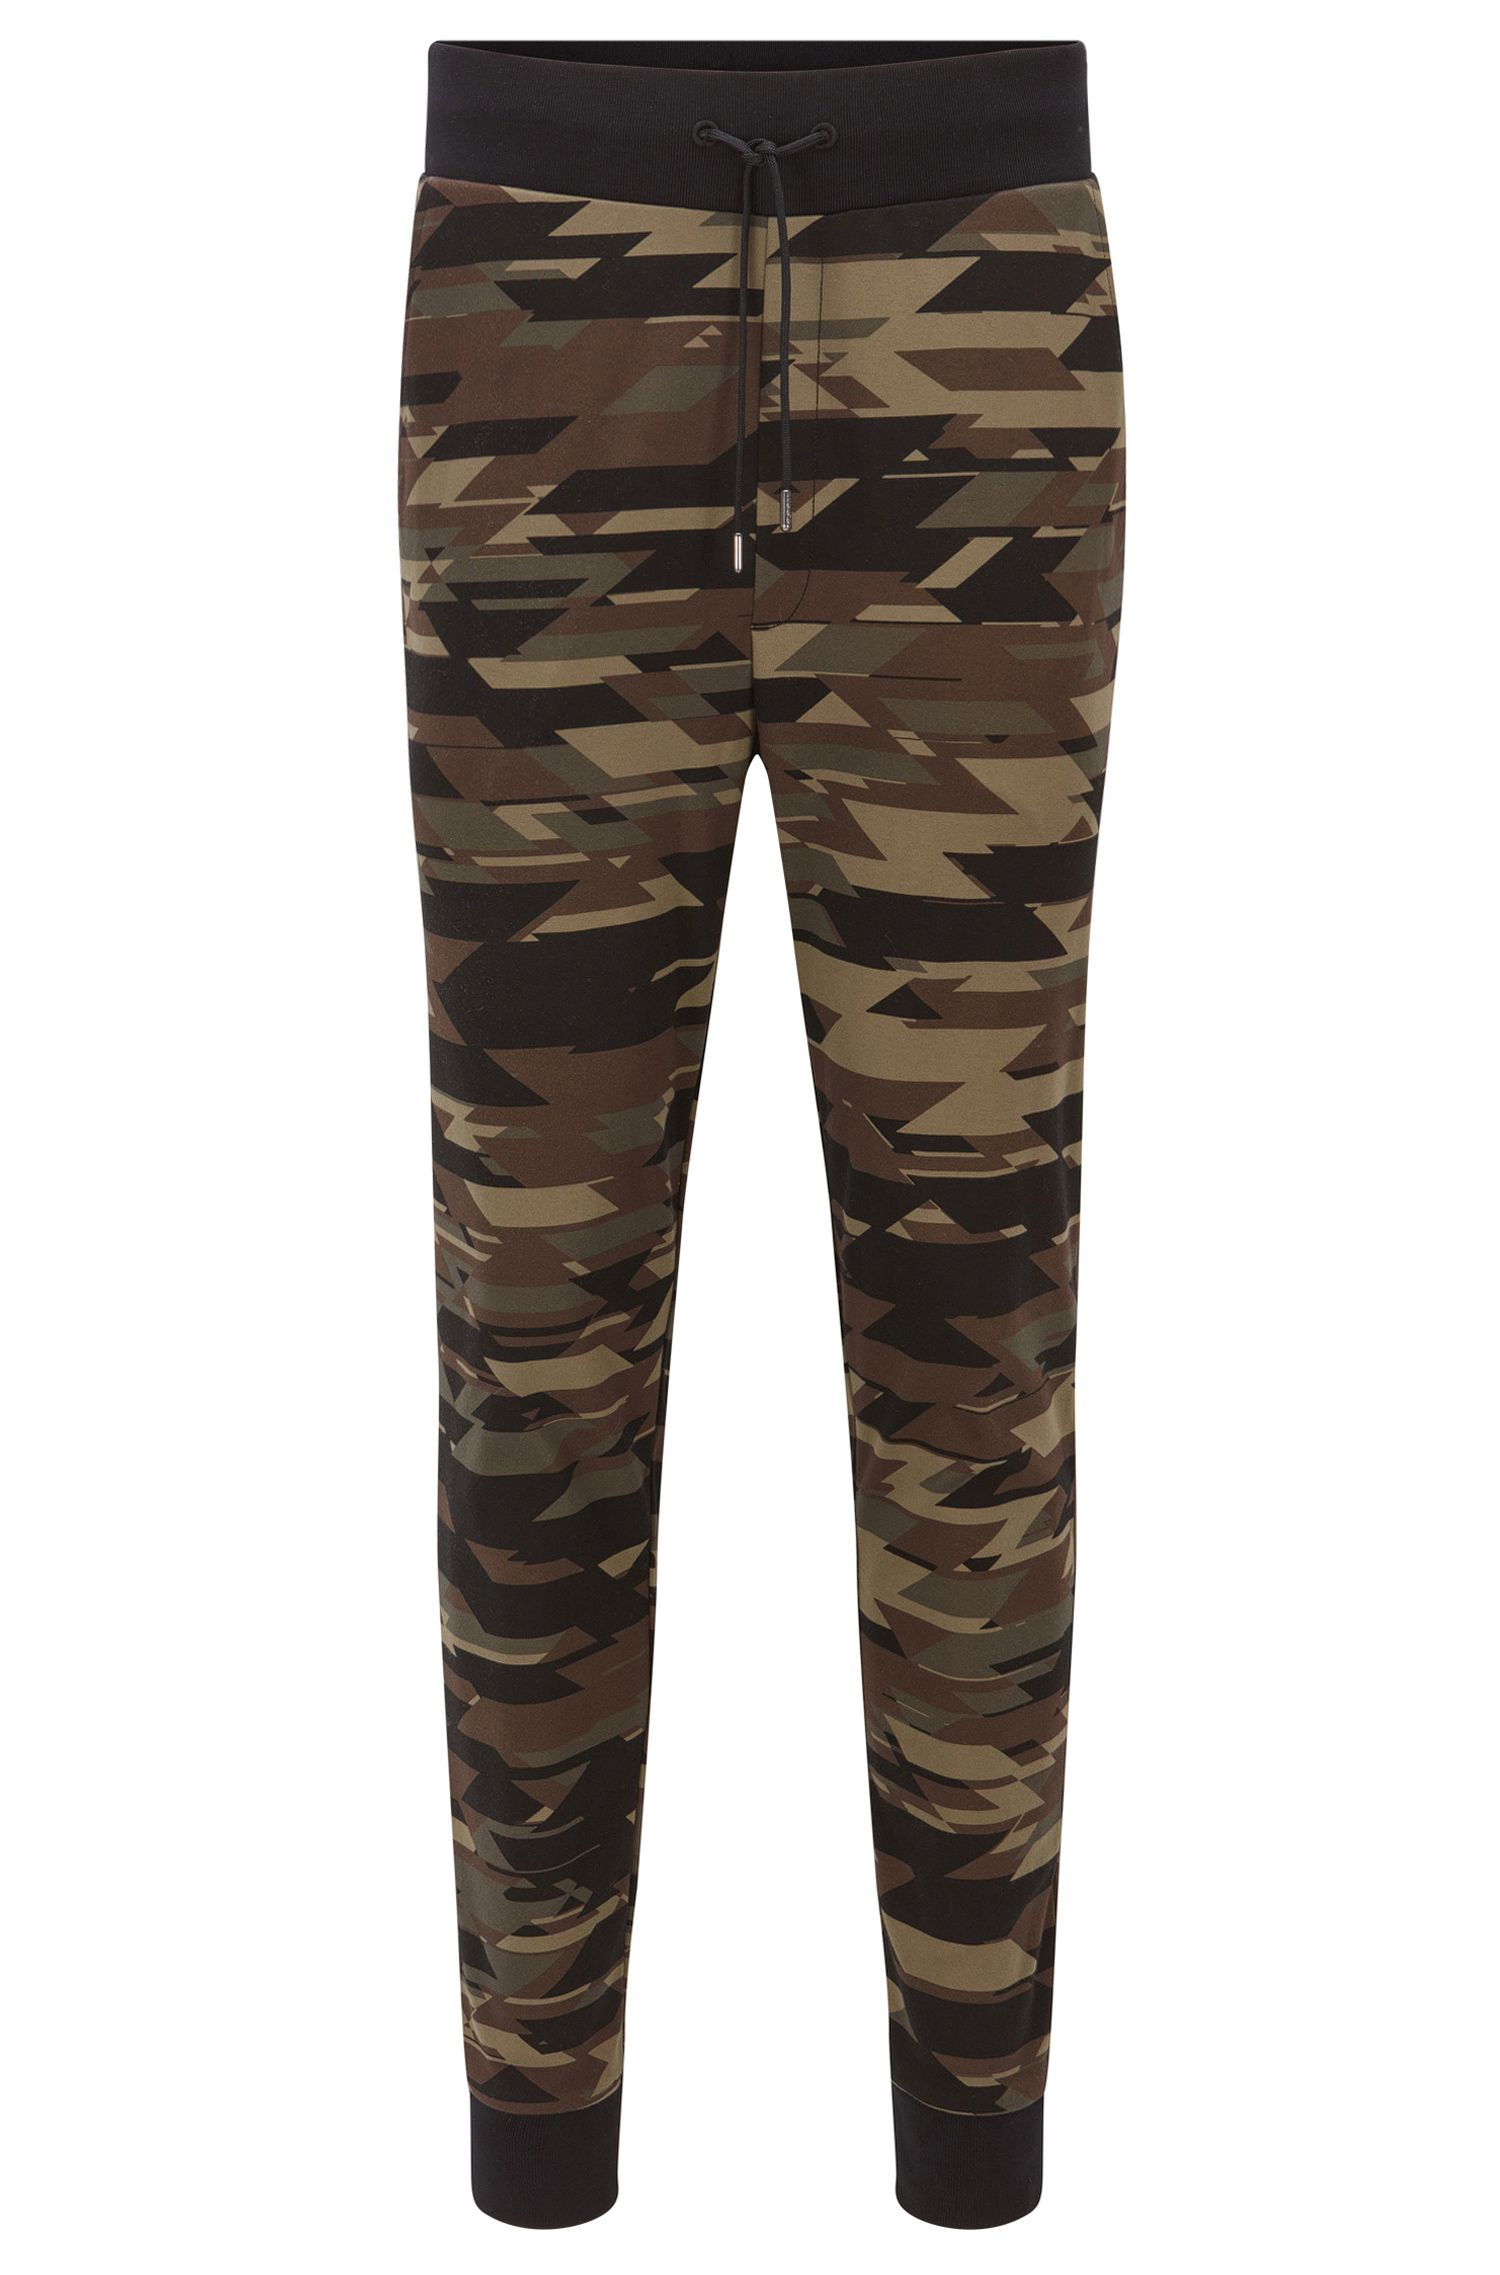 Pantalón regular fit en algodón interlock con estampado de camuflaje